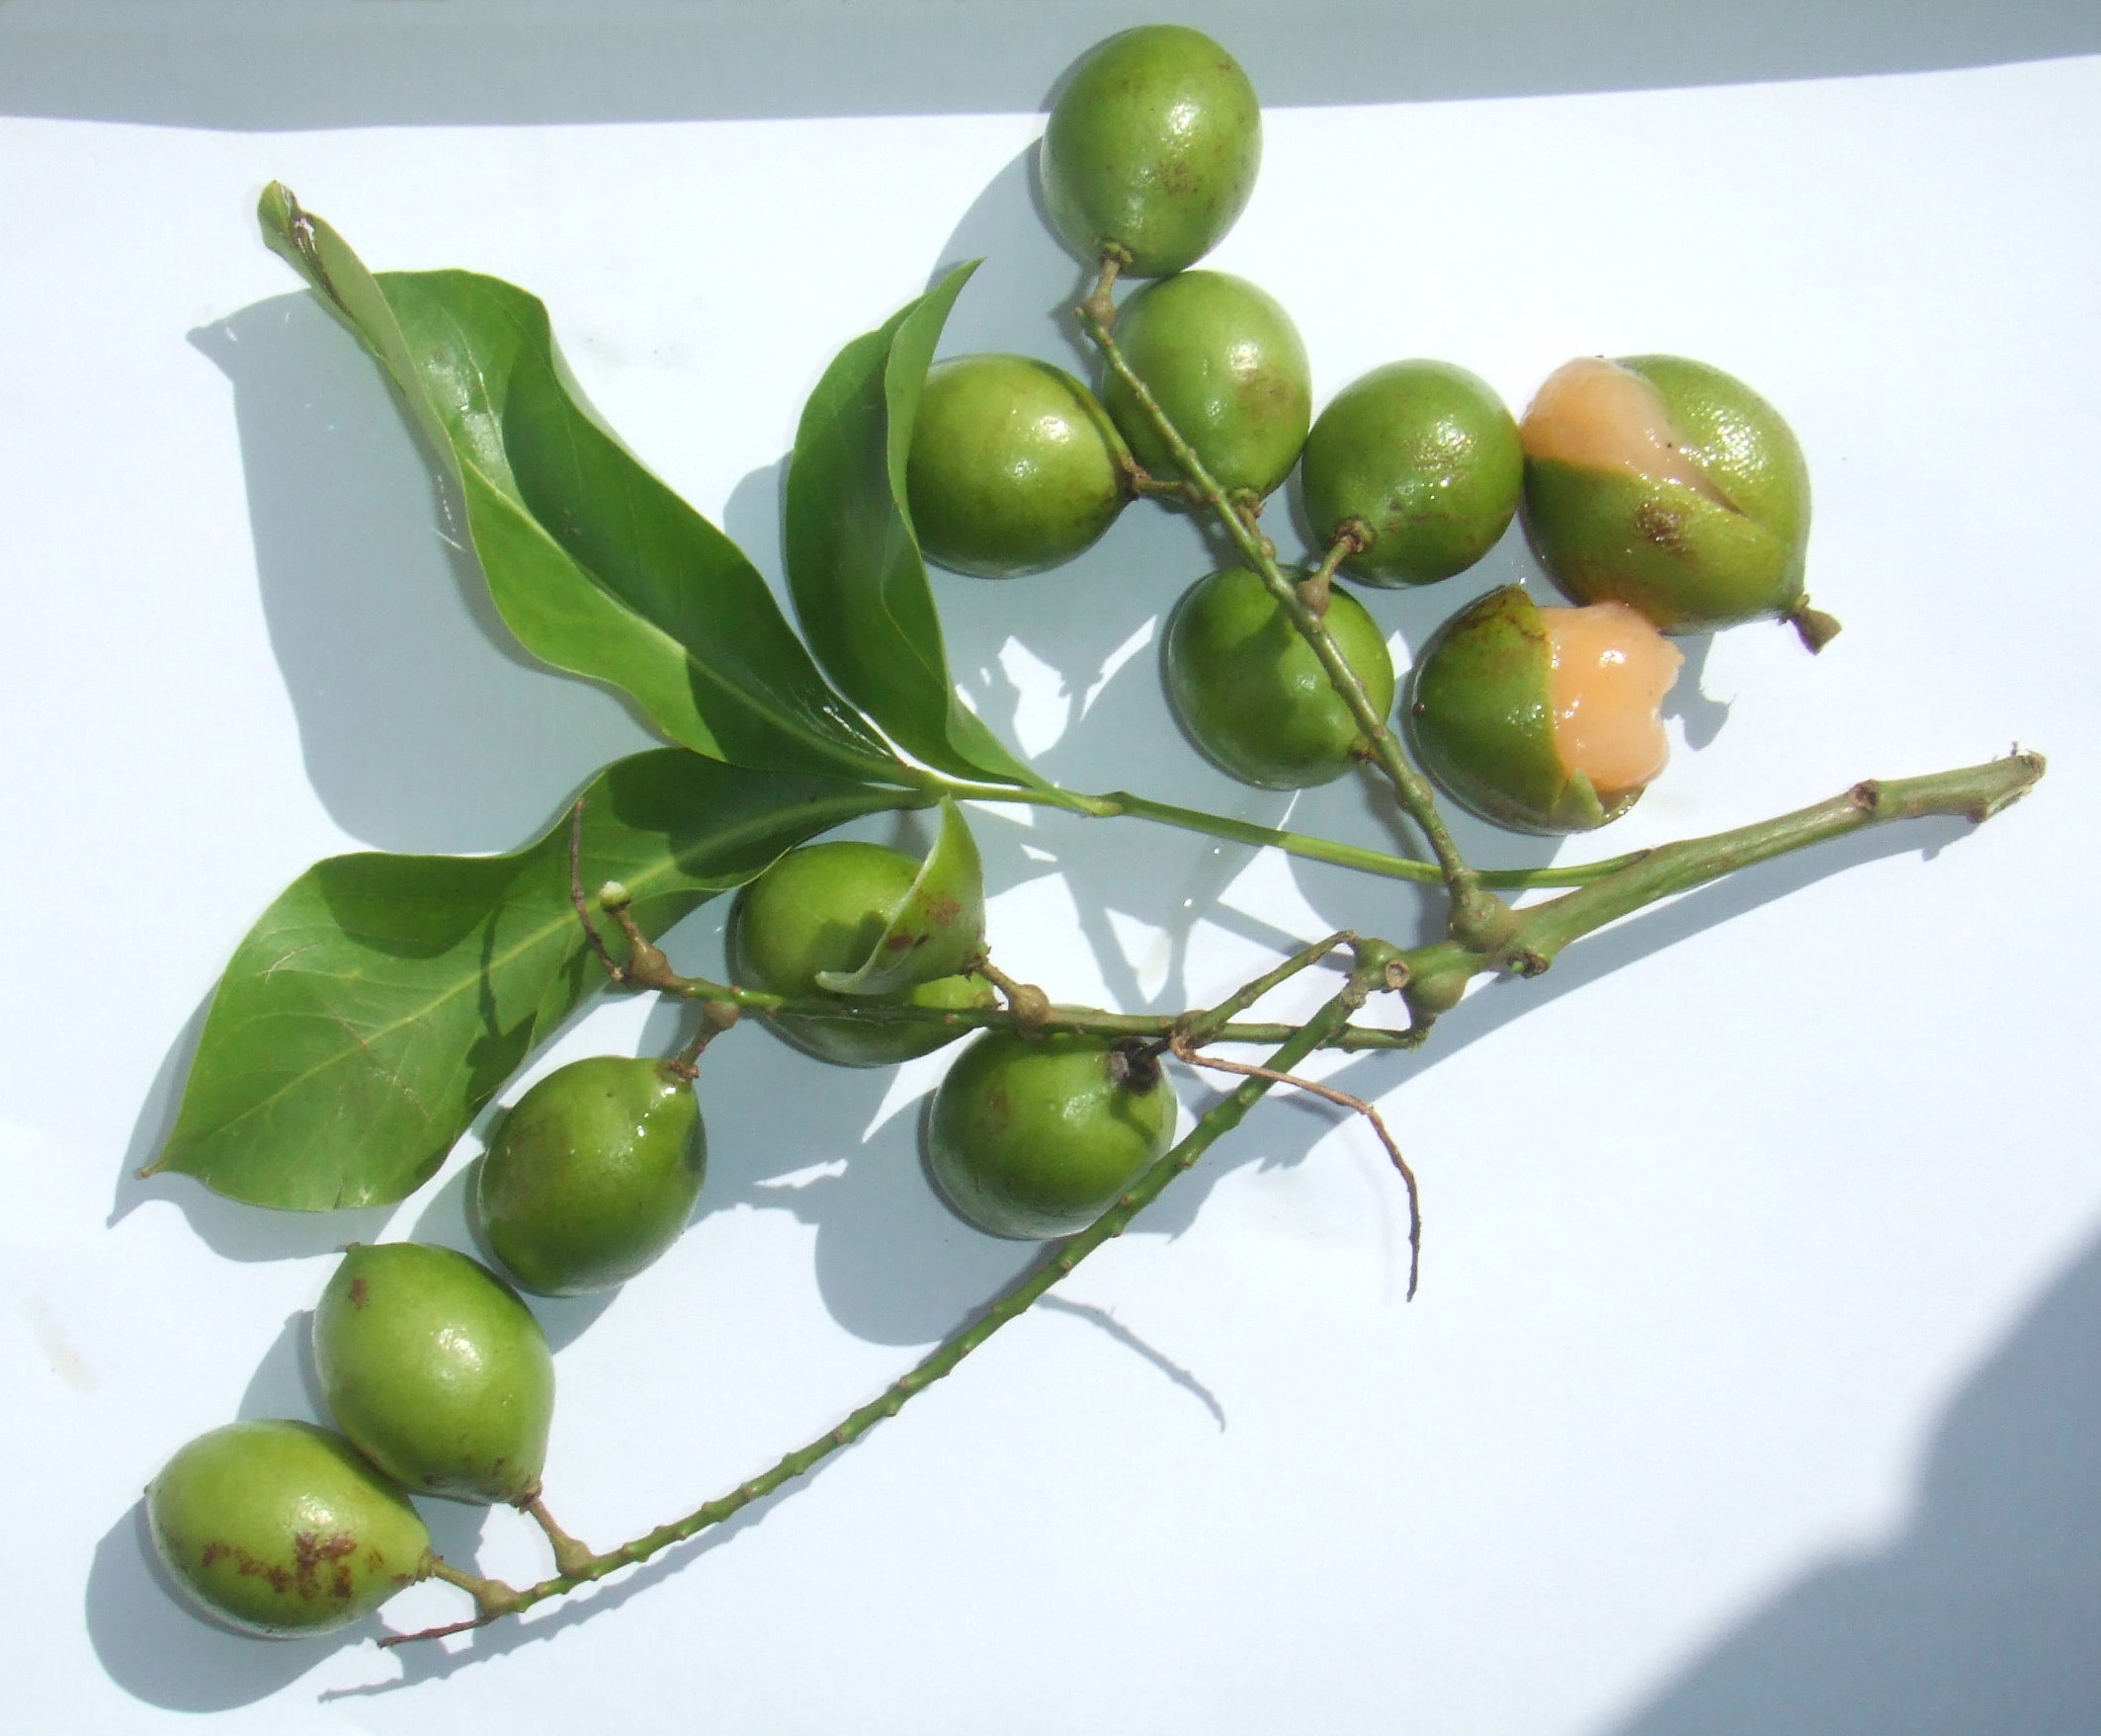 10 Fruits And Vegetables To Try From Puerto Rico